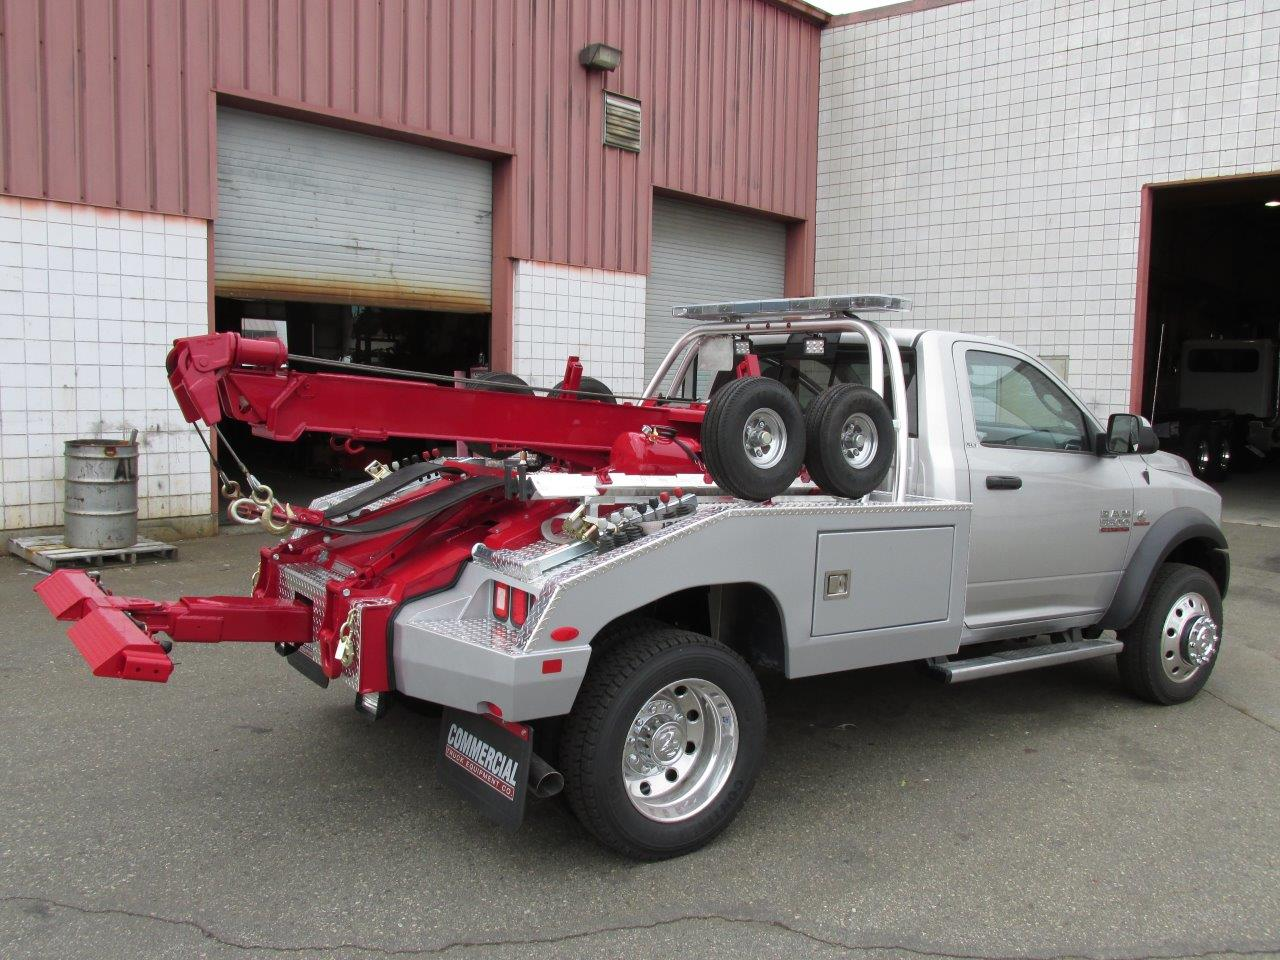 Towing Car Towing Equipment, Flat Bed Car Carriers, Tow Truck Sales